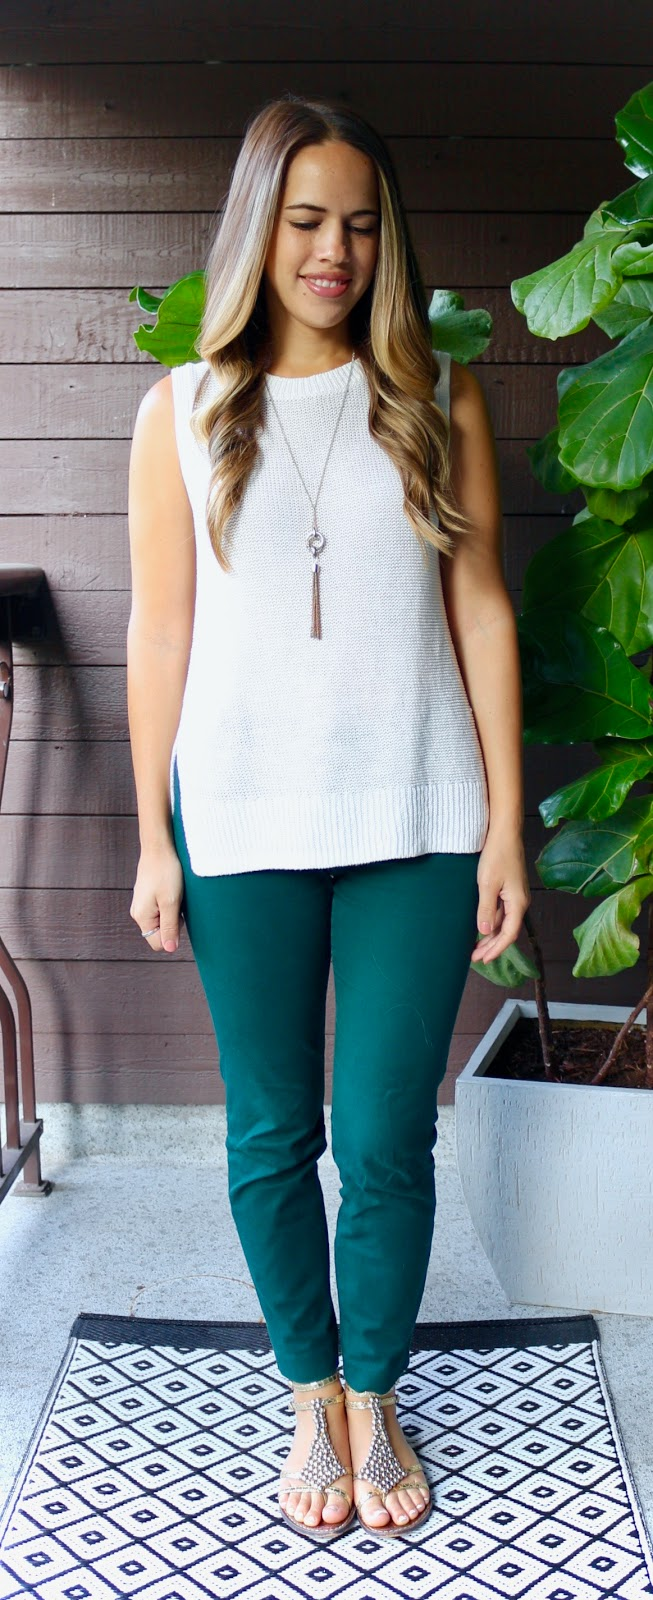 Jules in Flats - Sleeveless Tunic with Green Ankle Pants (Business Casual Summer Workwear on a Budget)